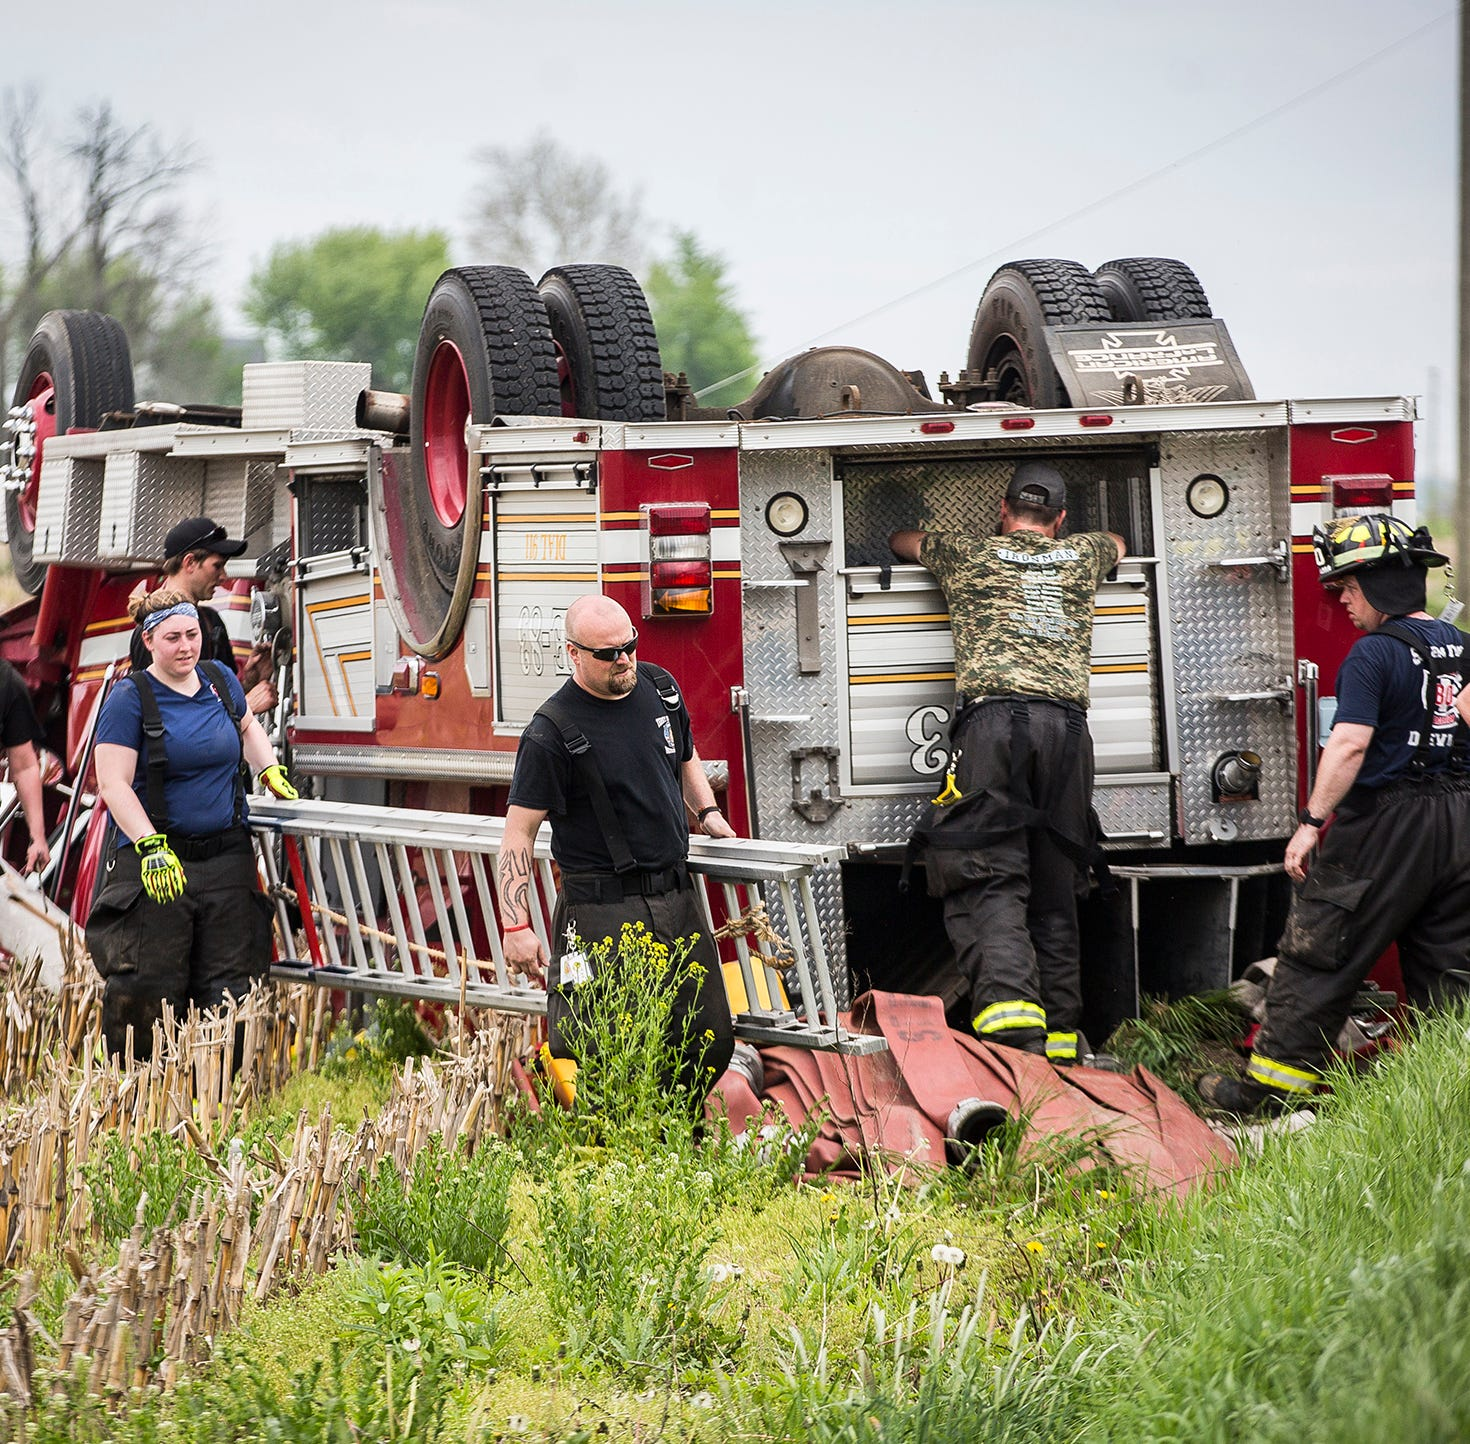 Electrical wires trap firefighters in firetruck rollover